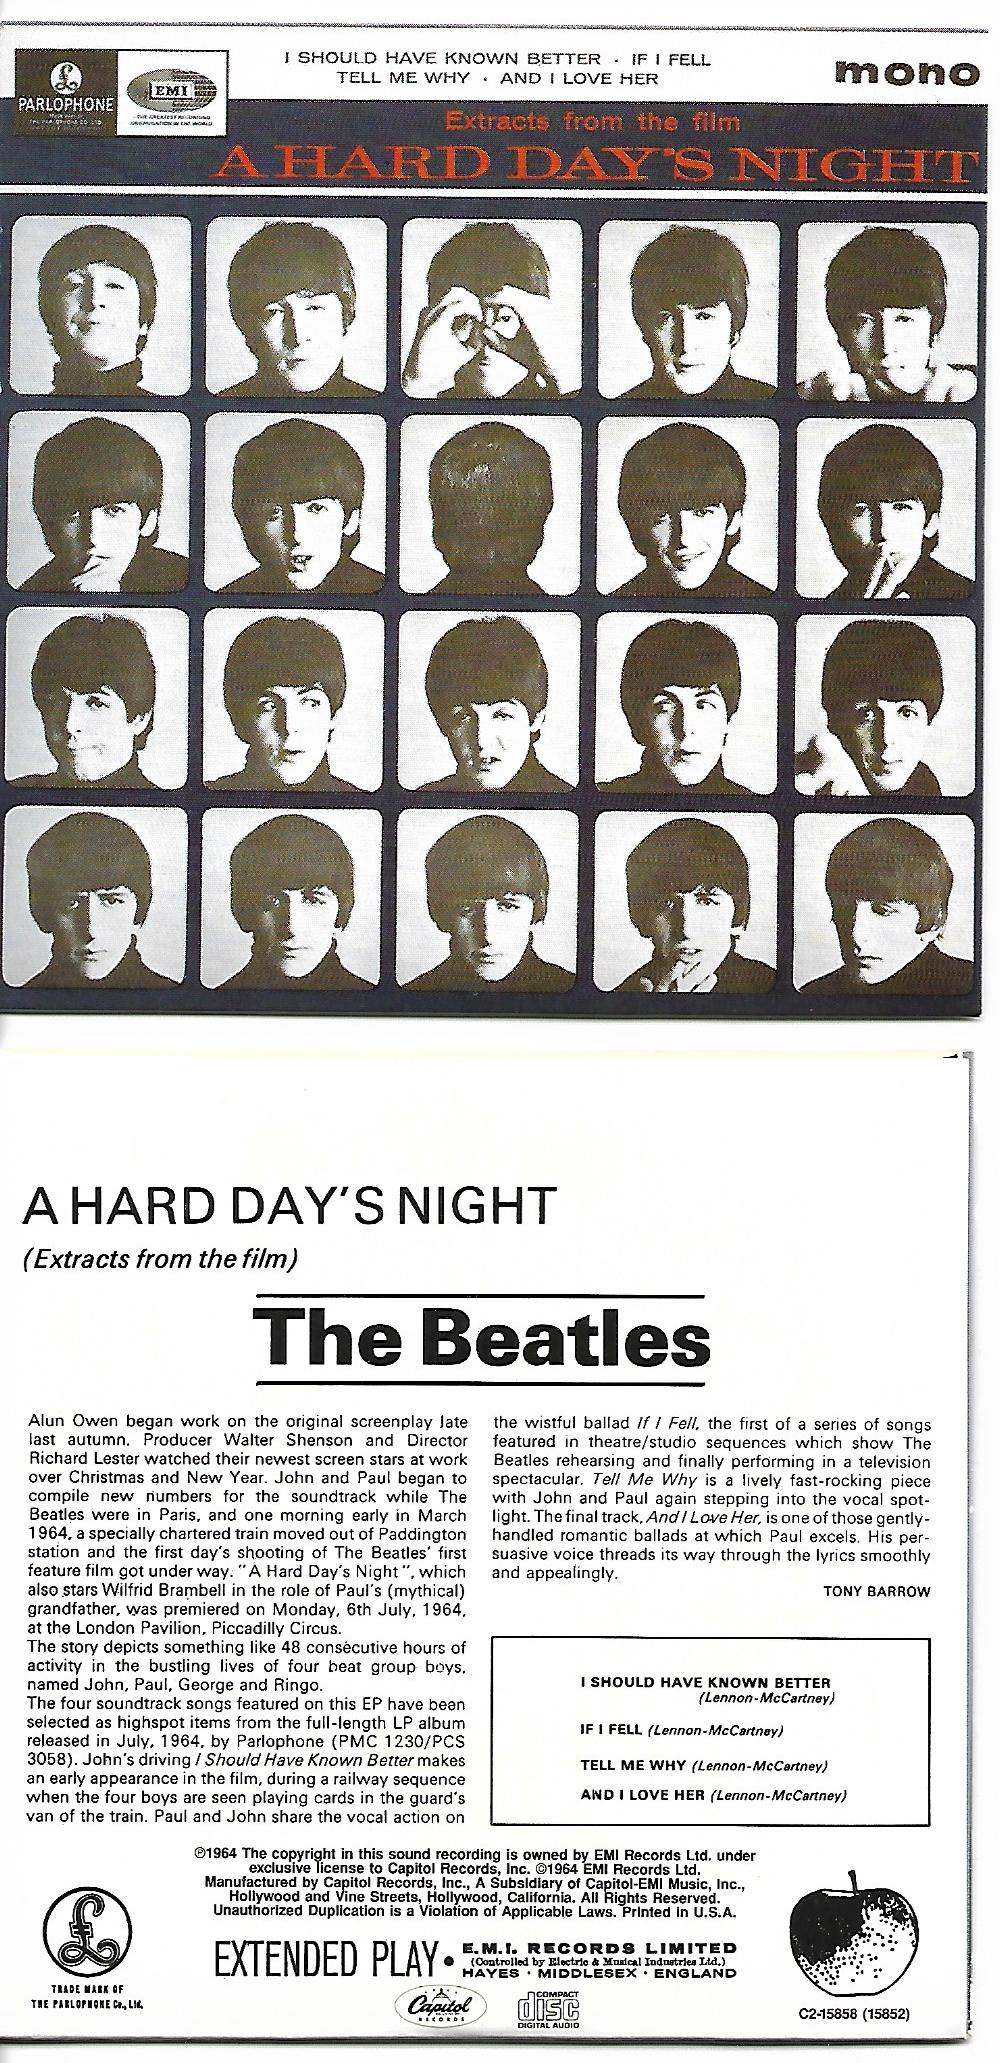 THE BEATLES - Extracts from the film A HARD DAY'S NIGHT EP 4-TRACK CARD SLEEVE - CD single